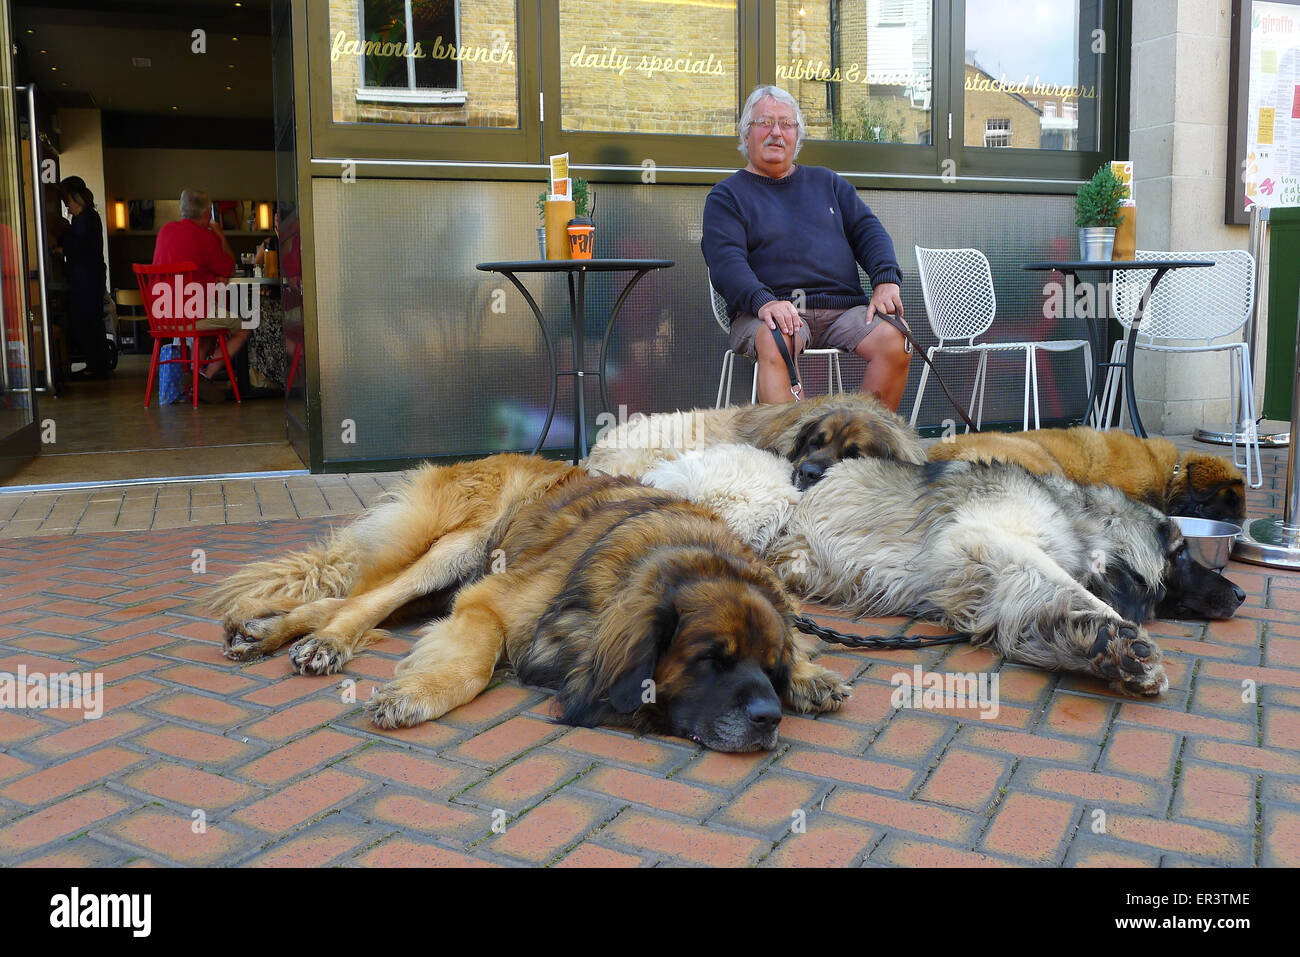 Leonberger dogs and owner outside cafe/restaurant in Chelmsford, Essex - Stock Image